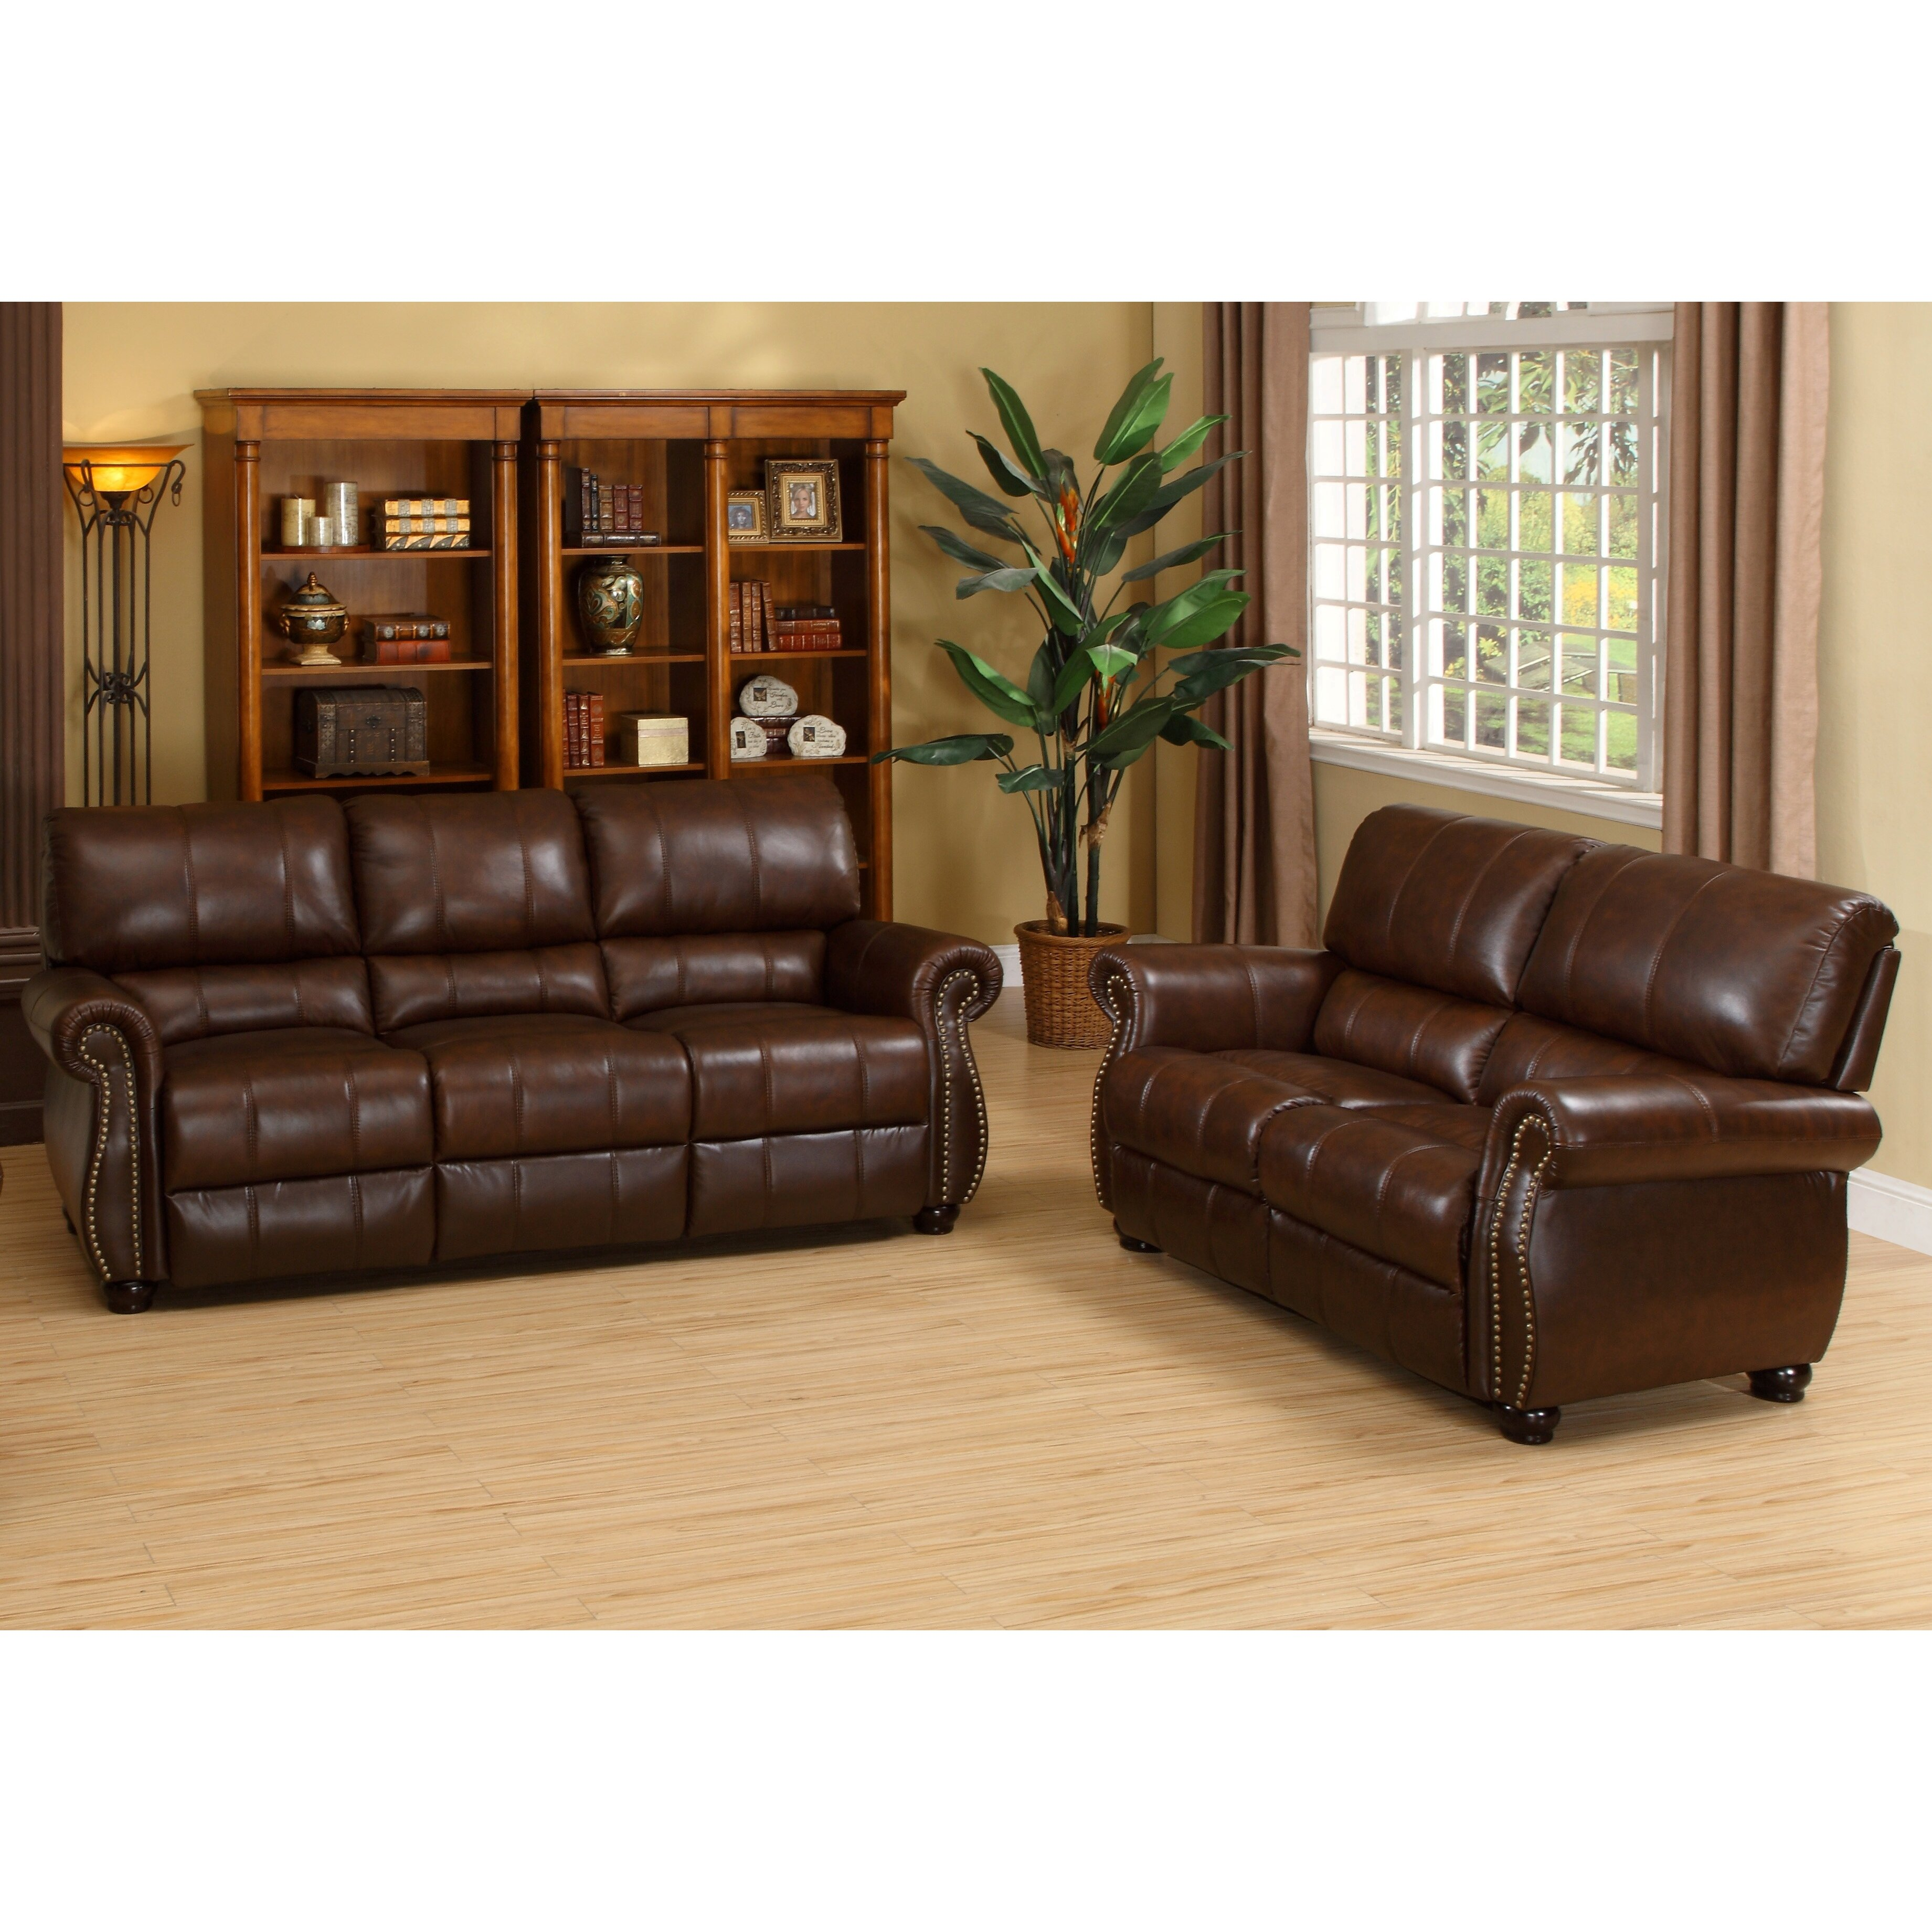 Sectional Sofa Sale Houston: Leather Sofas Houston Tx Quality Leather Sofa In Austin